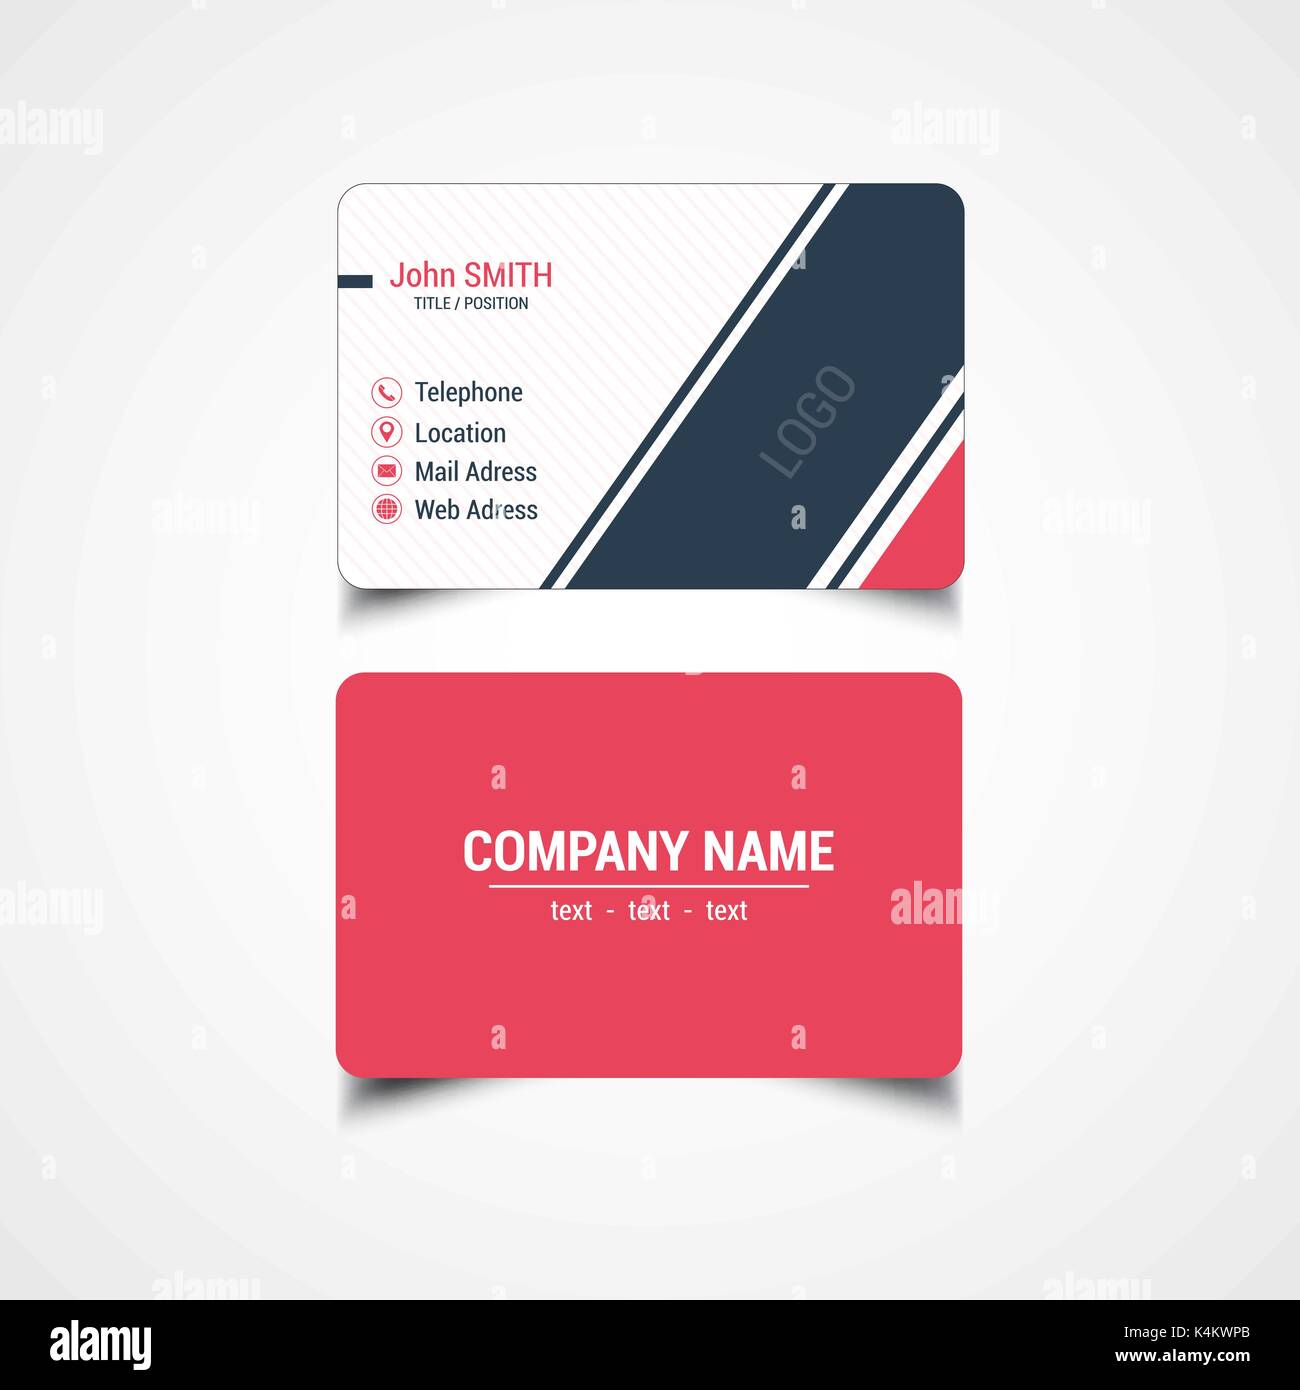 Round corner business card template vector illustration stock round corner business card template vector illustration fbccfo Image collections